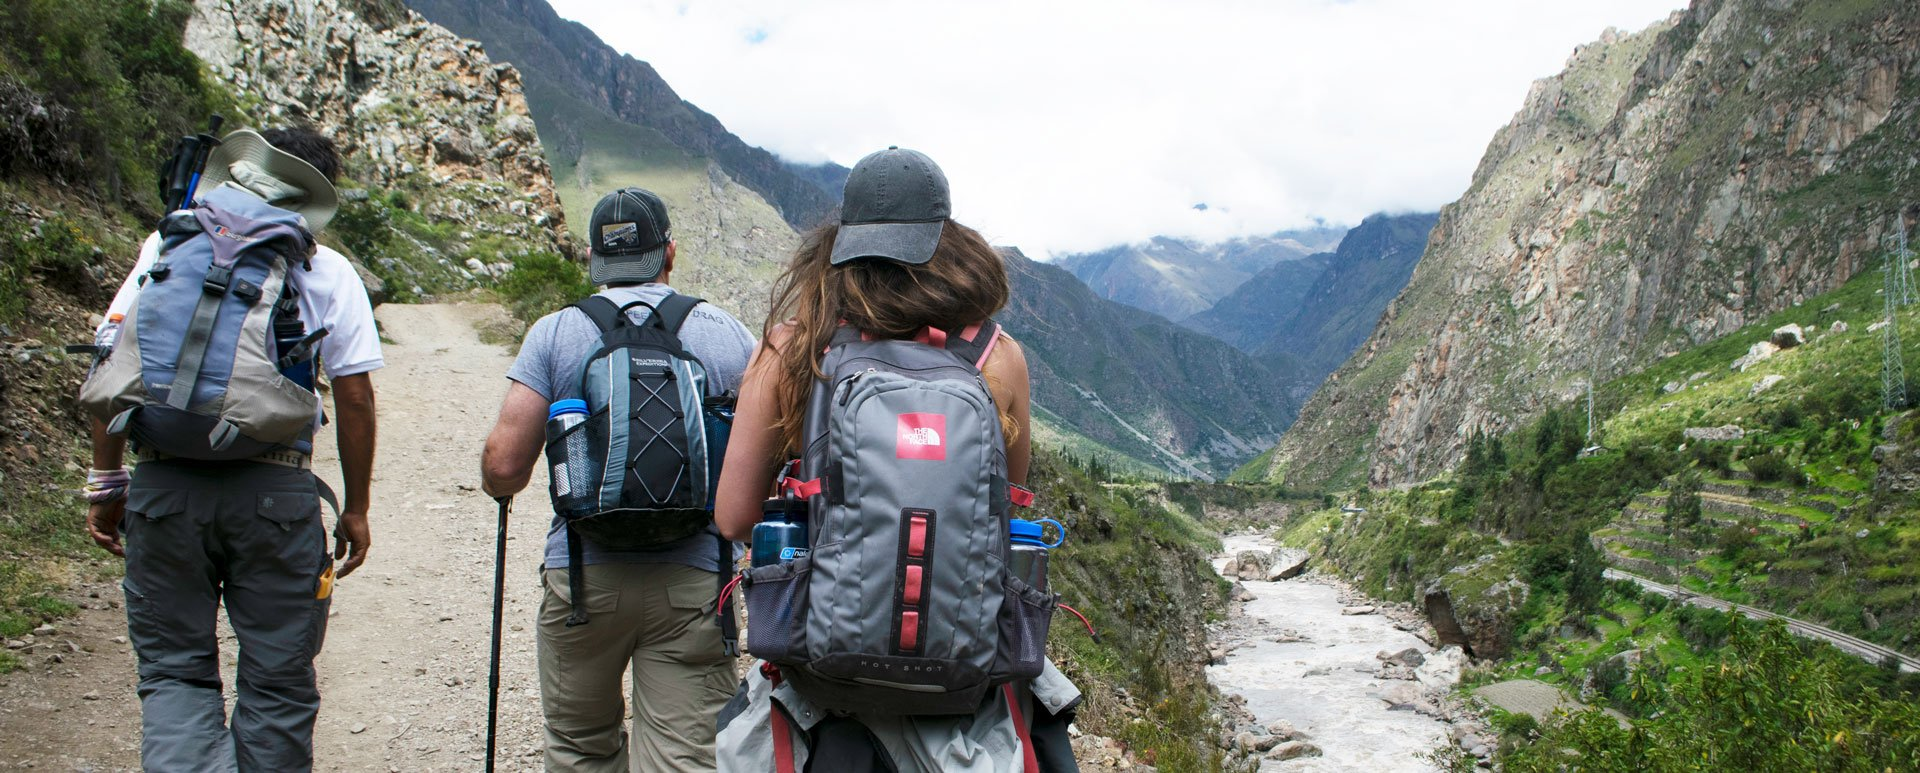 Tourist Short Inca Trail Trek to Machu PicchuAndean Discovery